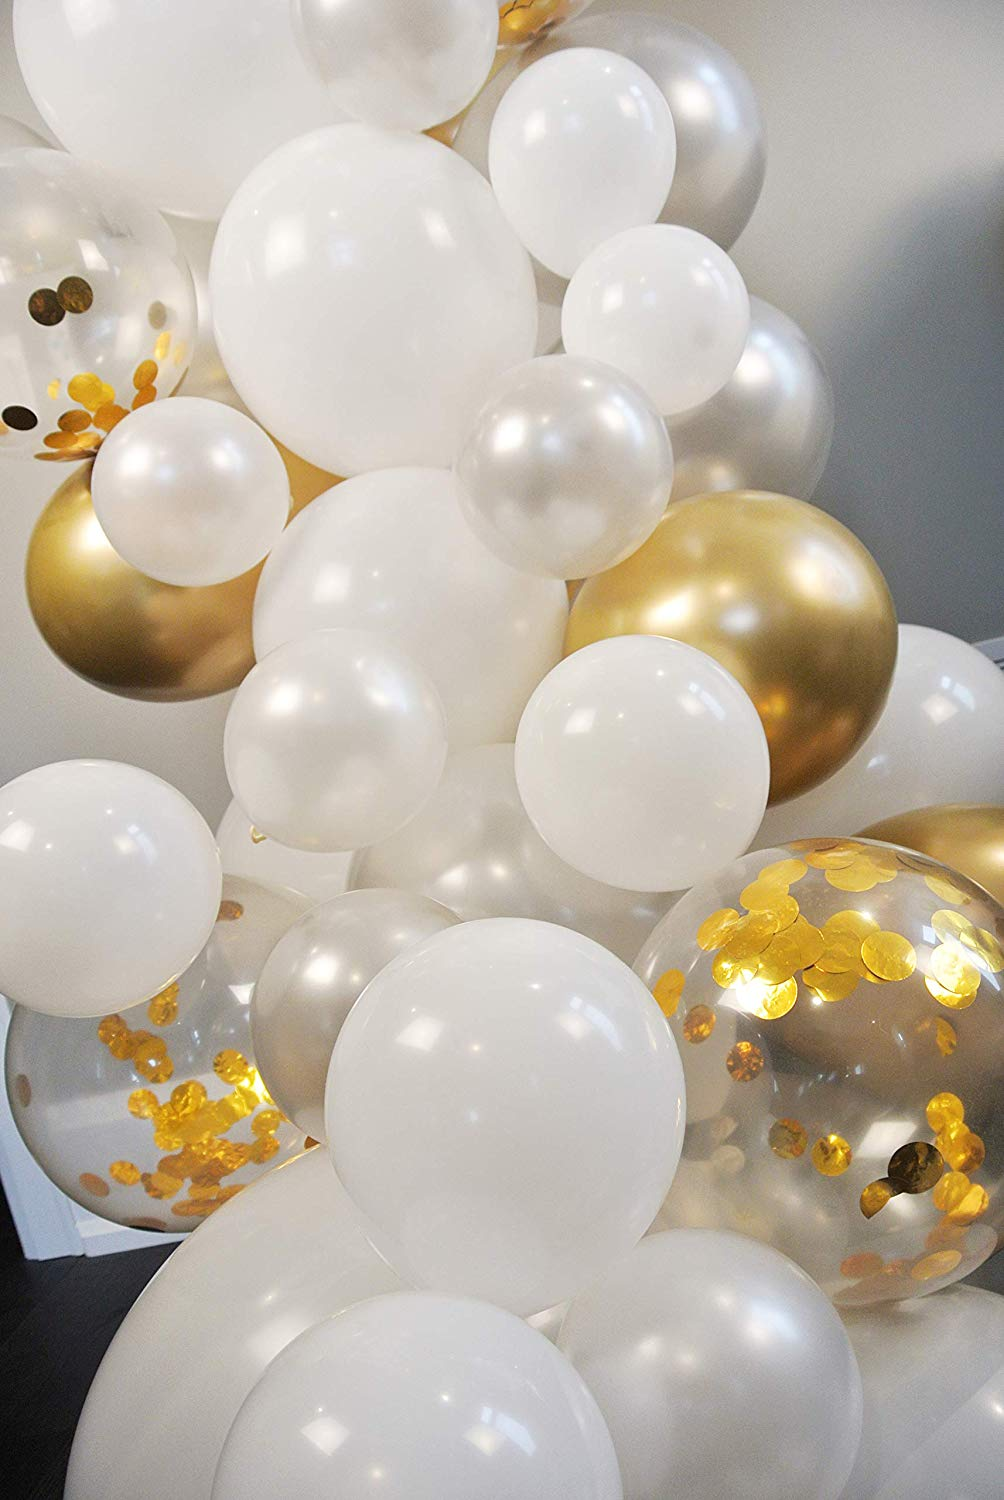 METABLE 100PCS Pearl White Chrome Gold Confetti Silver Glue Dots Decorating Strip Holiday Wedding Graduation Anniversary in Ballons Accessories from Home Garden